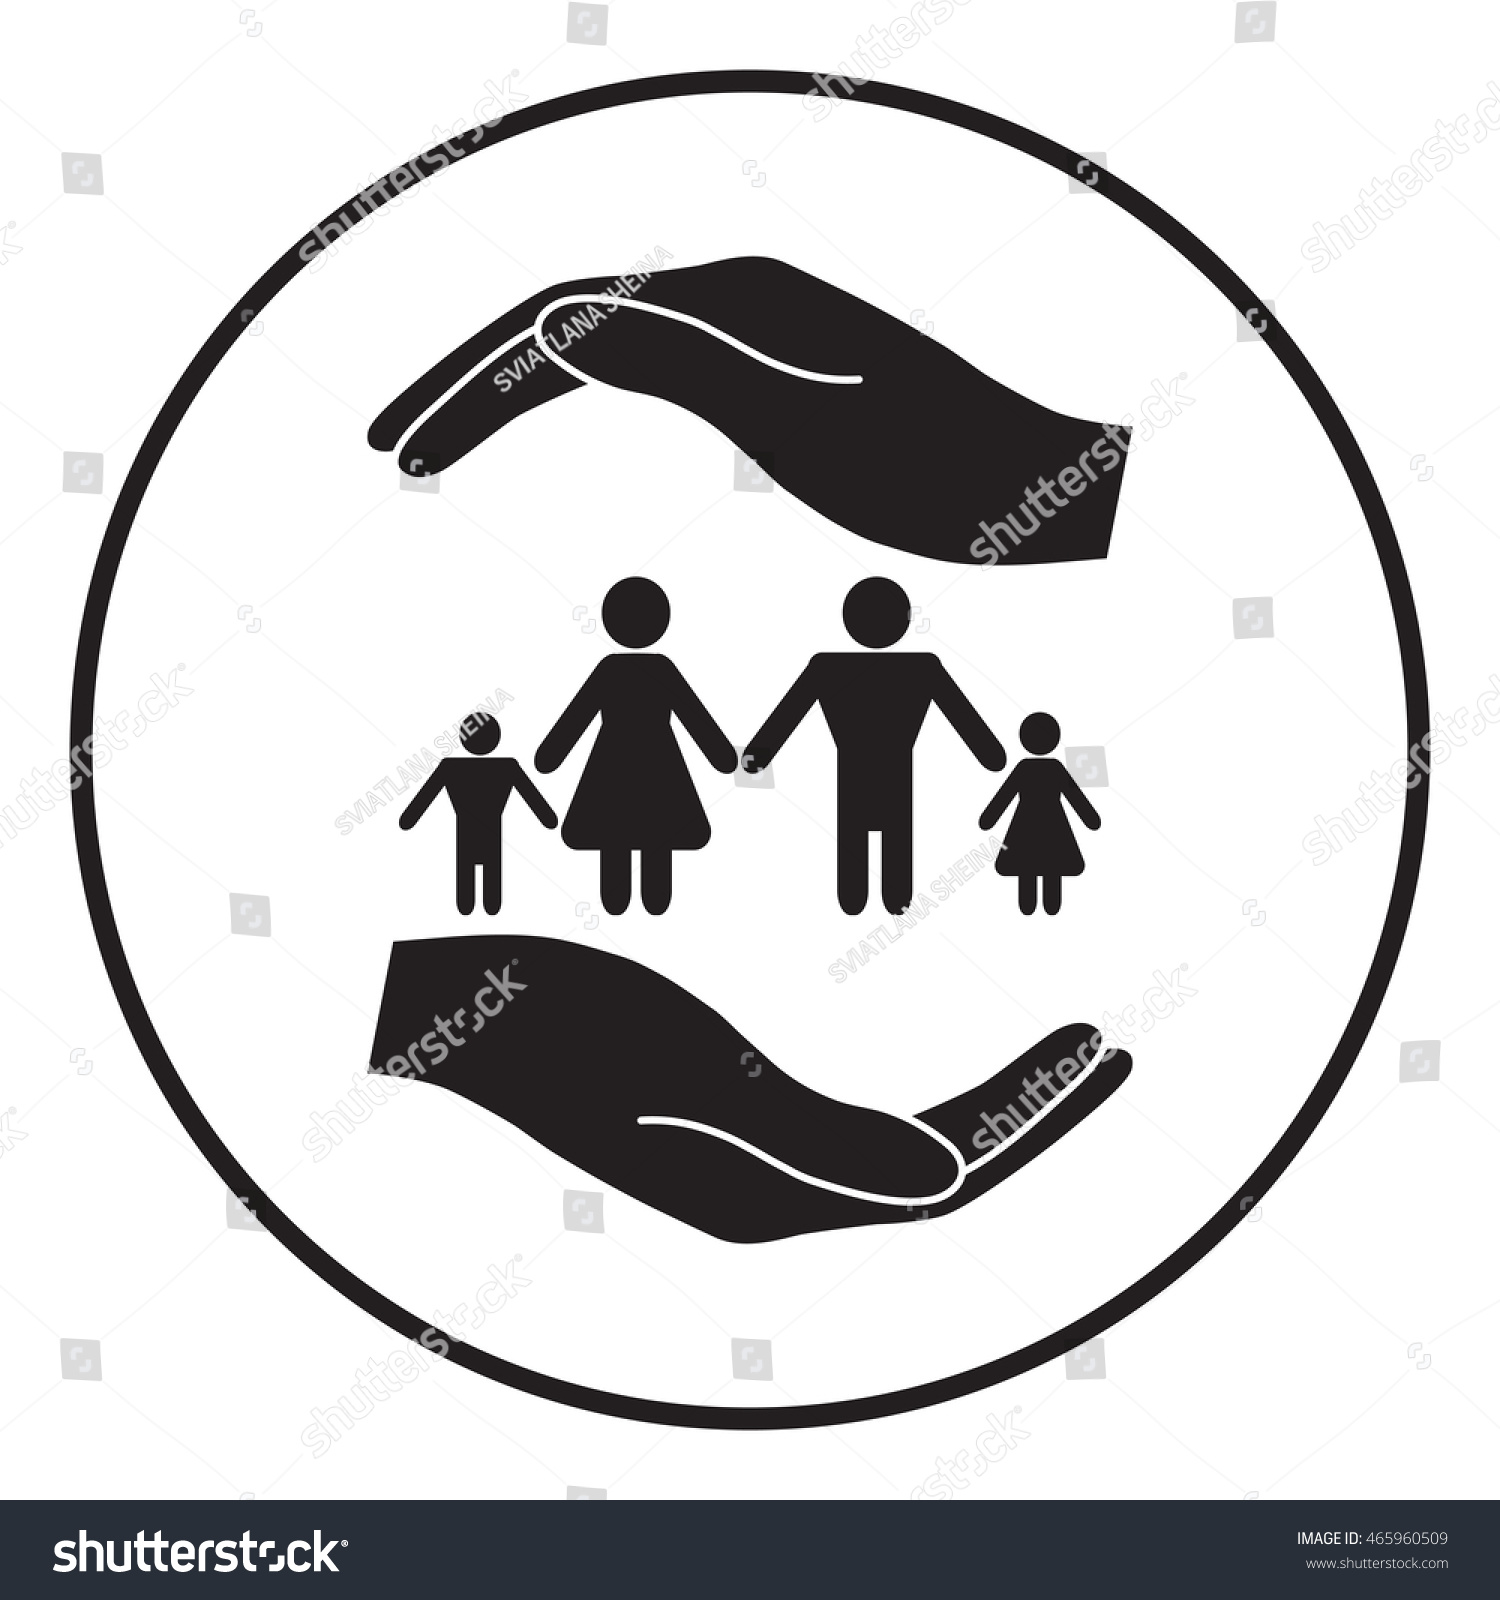 Hands holding symbol family family protect stock vector 465960509 hands holding a symbol of family family protect symbol buycottarizona Image collections